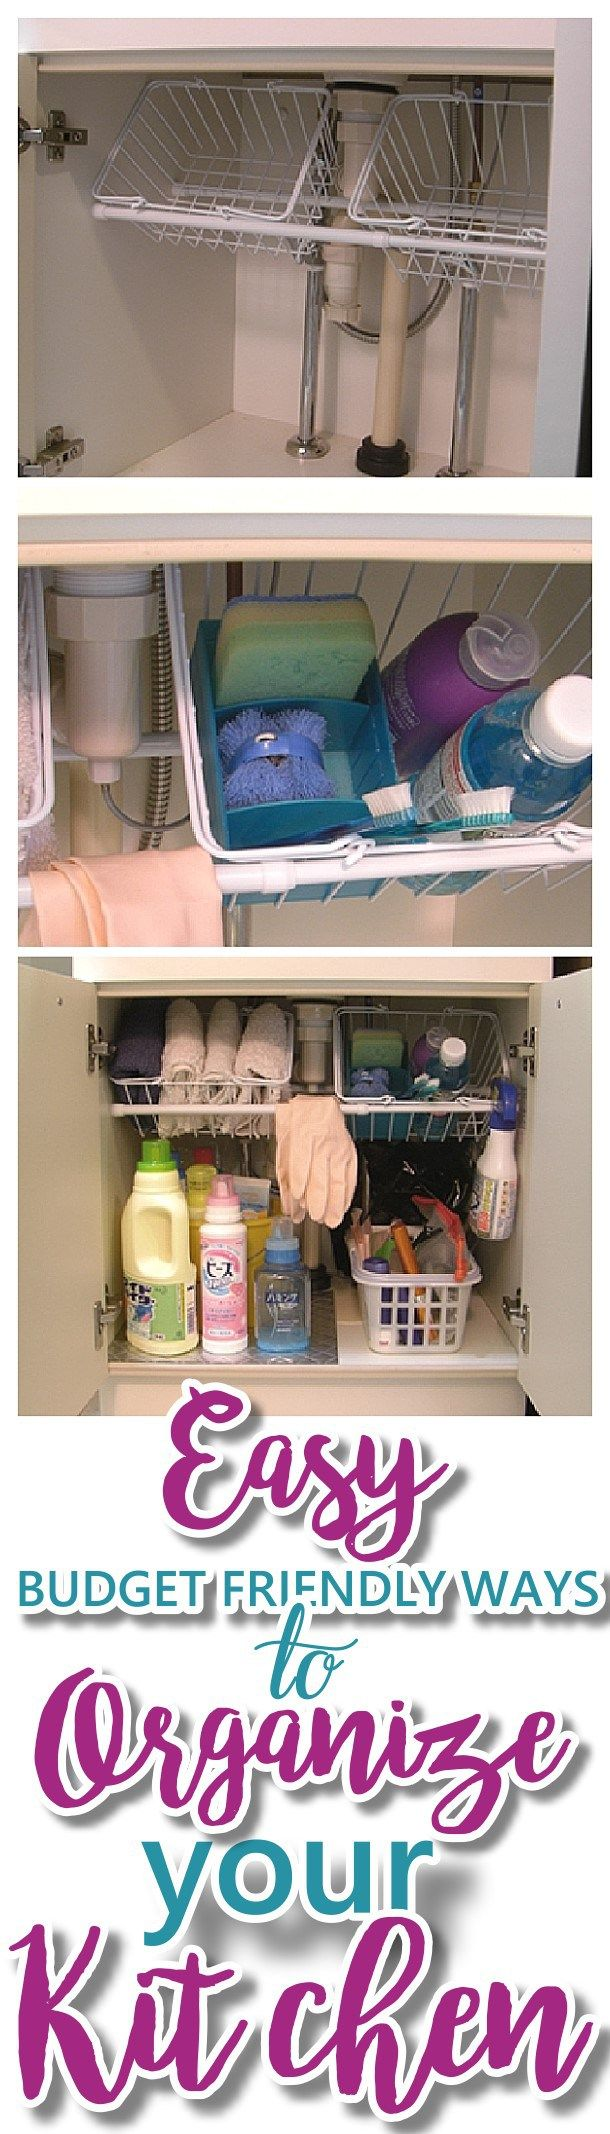 Tips for organizing your kitchen cabinets - Easy Budget Friendly Ways To Organize Your Kitchen The Very Best Cheap Quick Tips